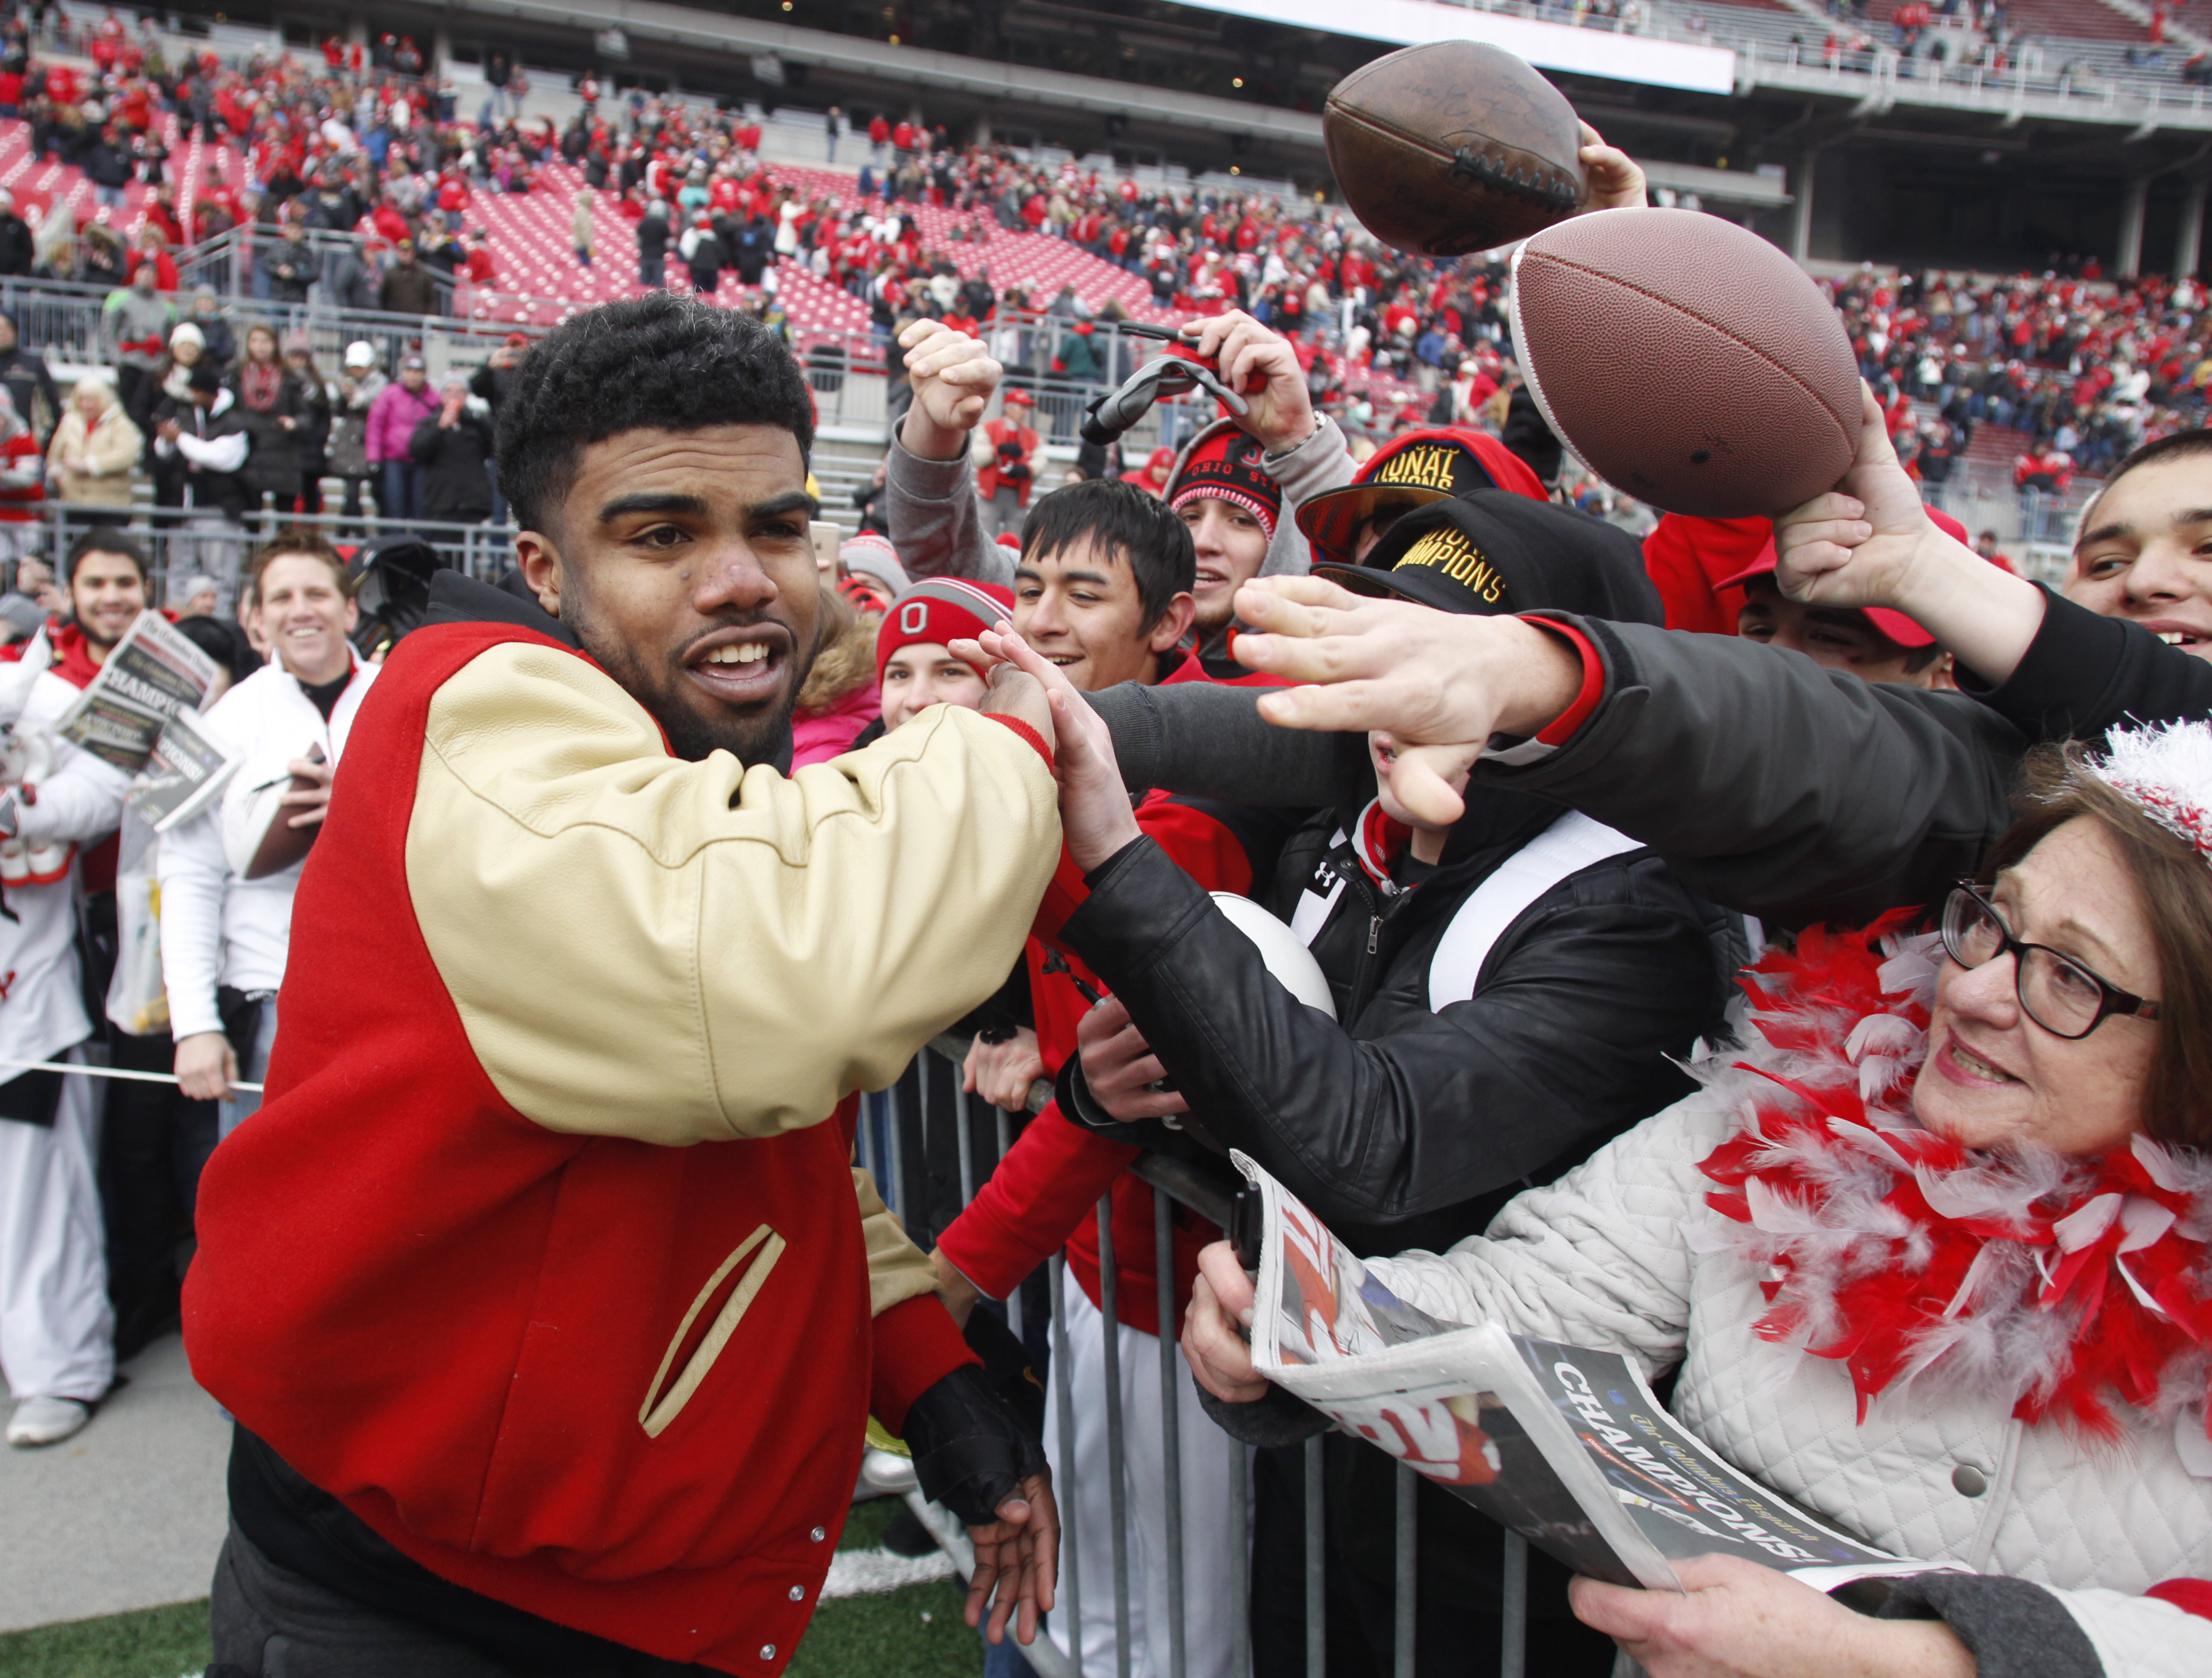 This Jan. 24, 2015 file photo shows Ohio State running back Ezekiel Elliott greeting fans during a celebration of the Buckeye's 2014 College Football Playoff national championship at Ohio Stadium in Columbus, Ohio. (AP Photo/Paul Vernon, File)